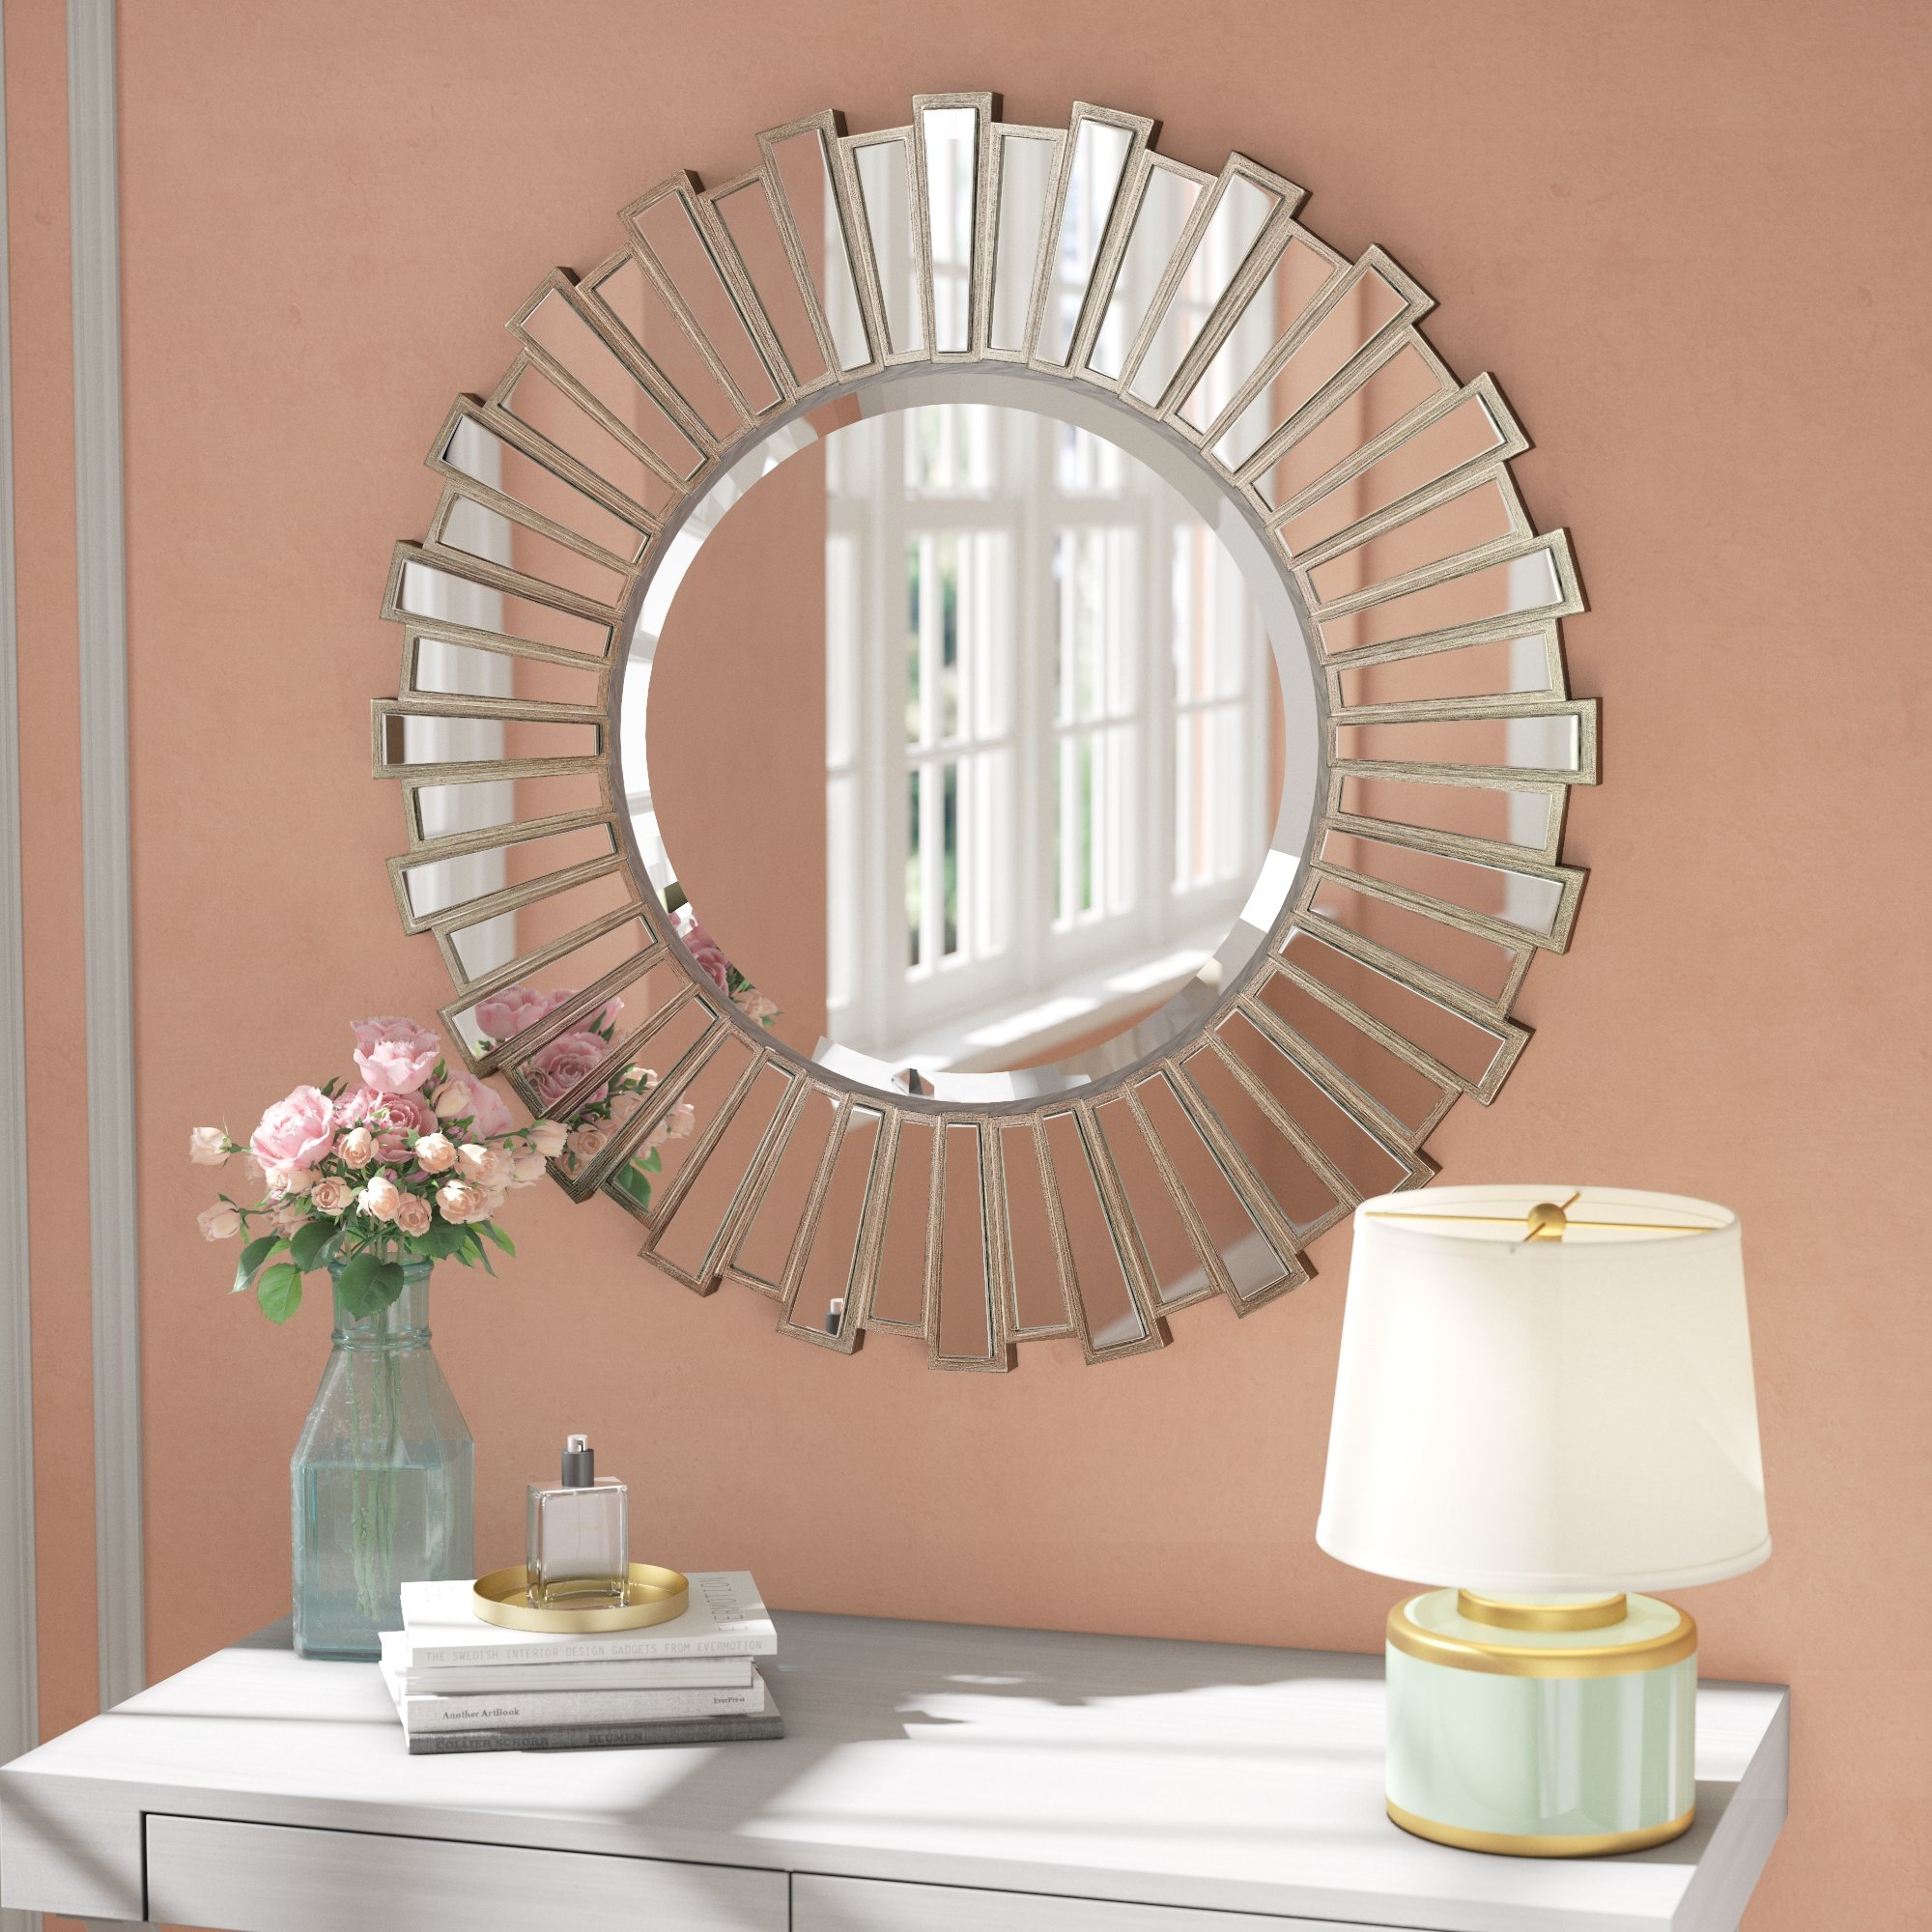 Bertrand Sunburst Resin Accent Wall Mirror Intended For Accent Wall Mirrors (Image 6 of 20)